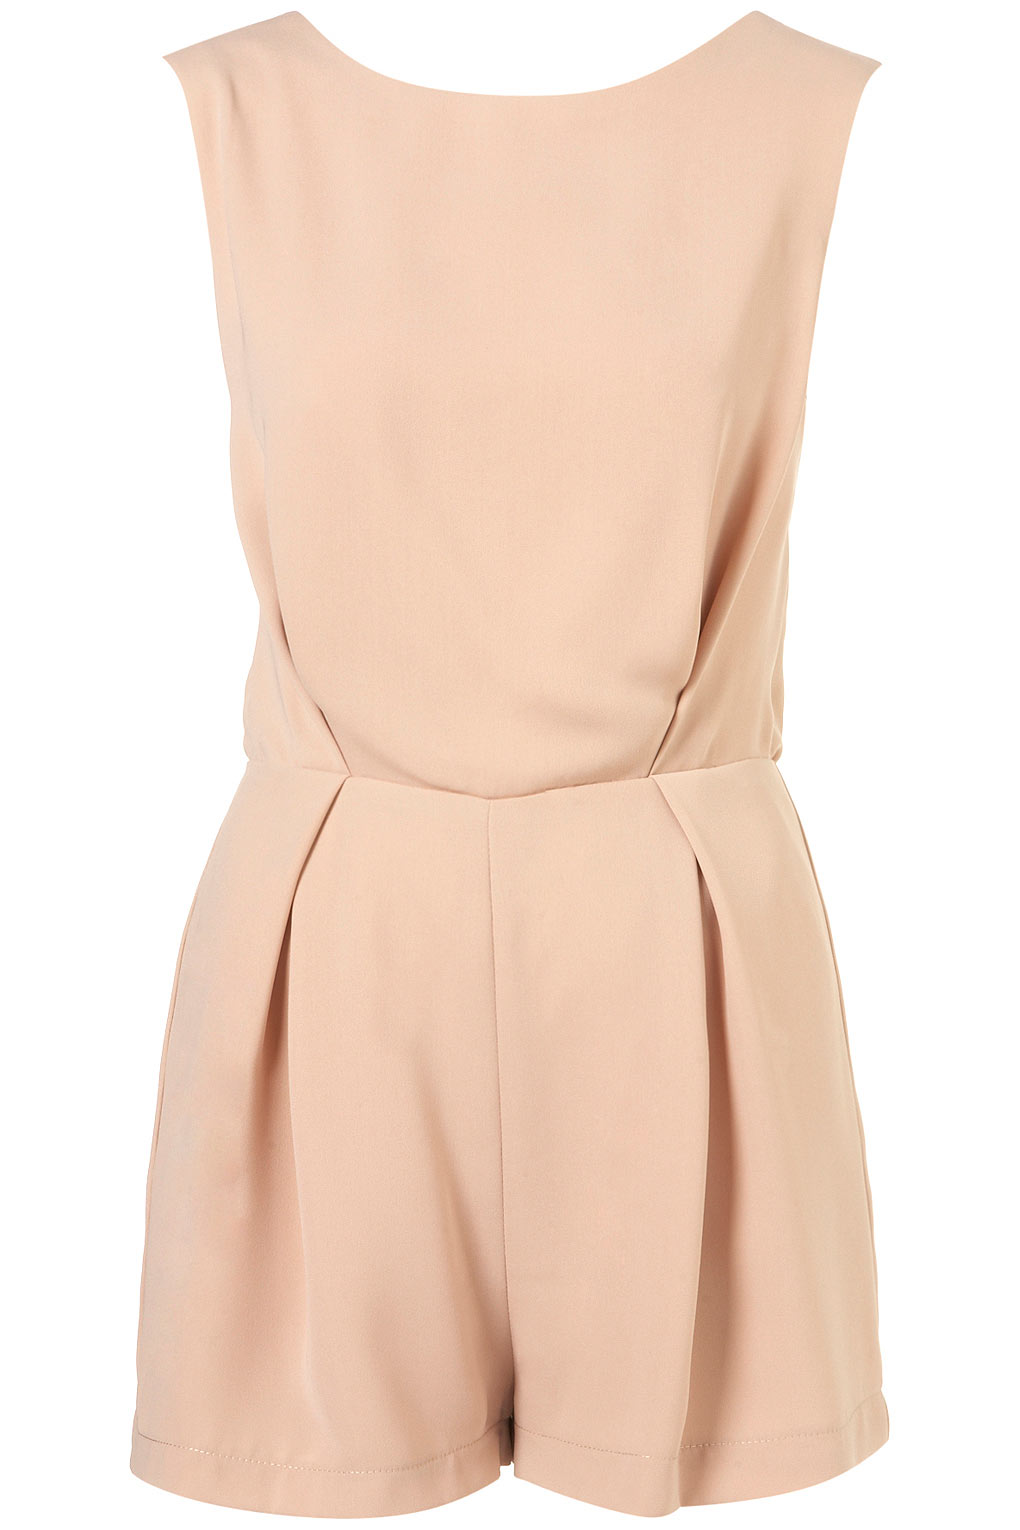 0279ed931b Lyst - TOPSHOP Lace Back Playsuit in Pink